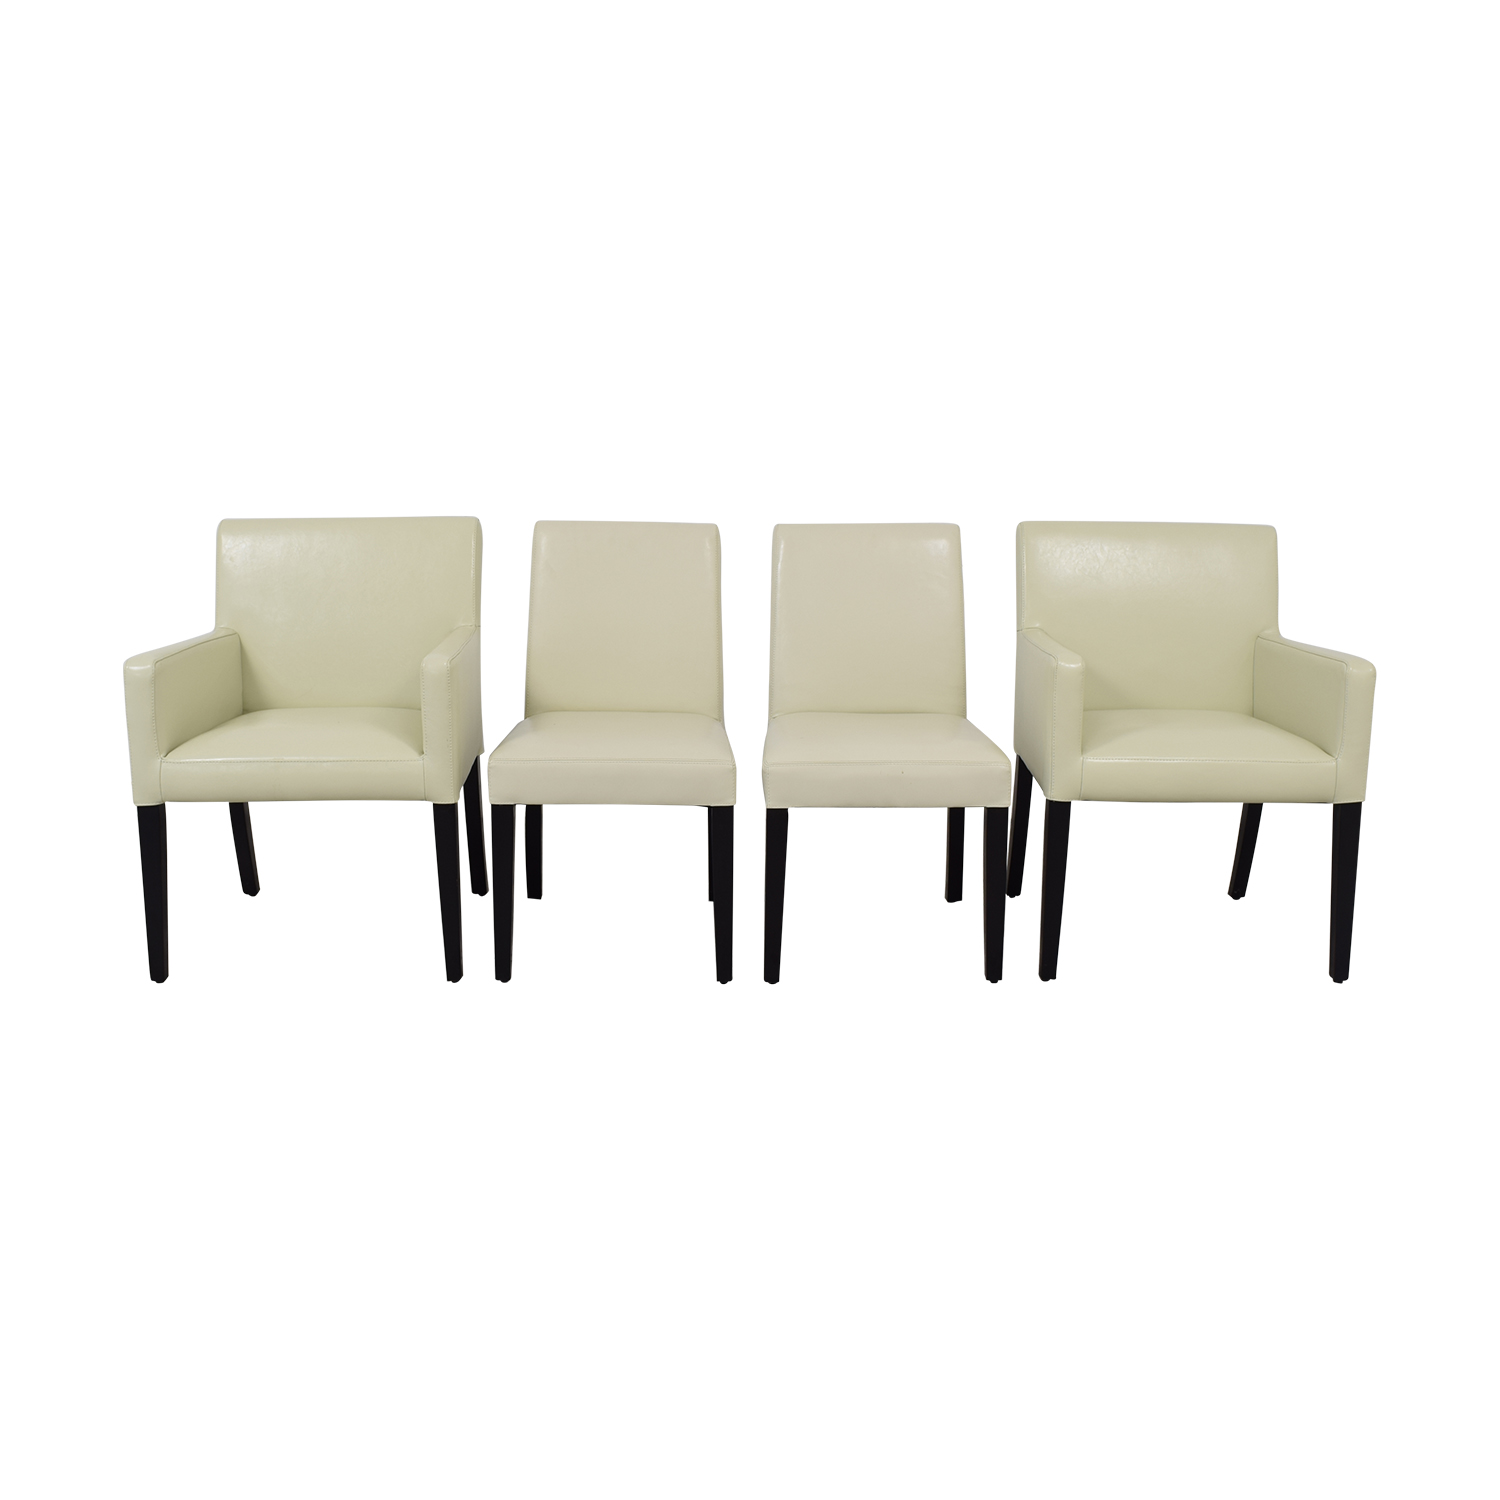 buy Crate & Barrel Pullman Dining Chairs Crate & Barrel Dining Chairs